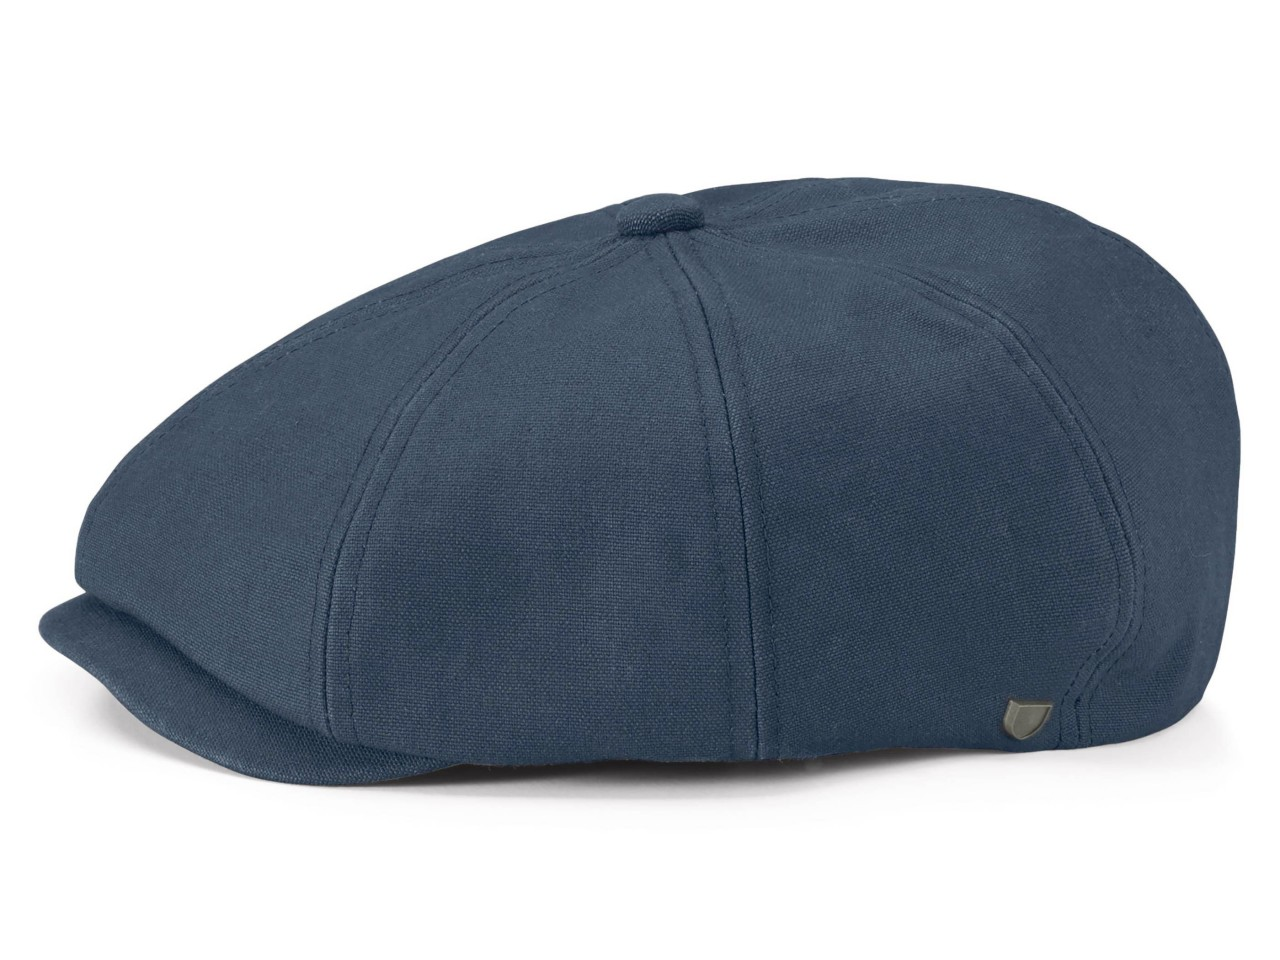 Brixton Brood Reserve Snap Cap 8 Panel Newsboy Flatcap